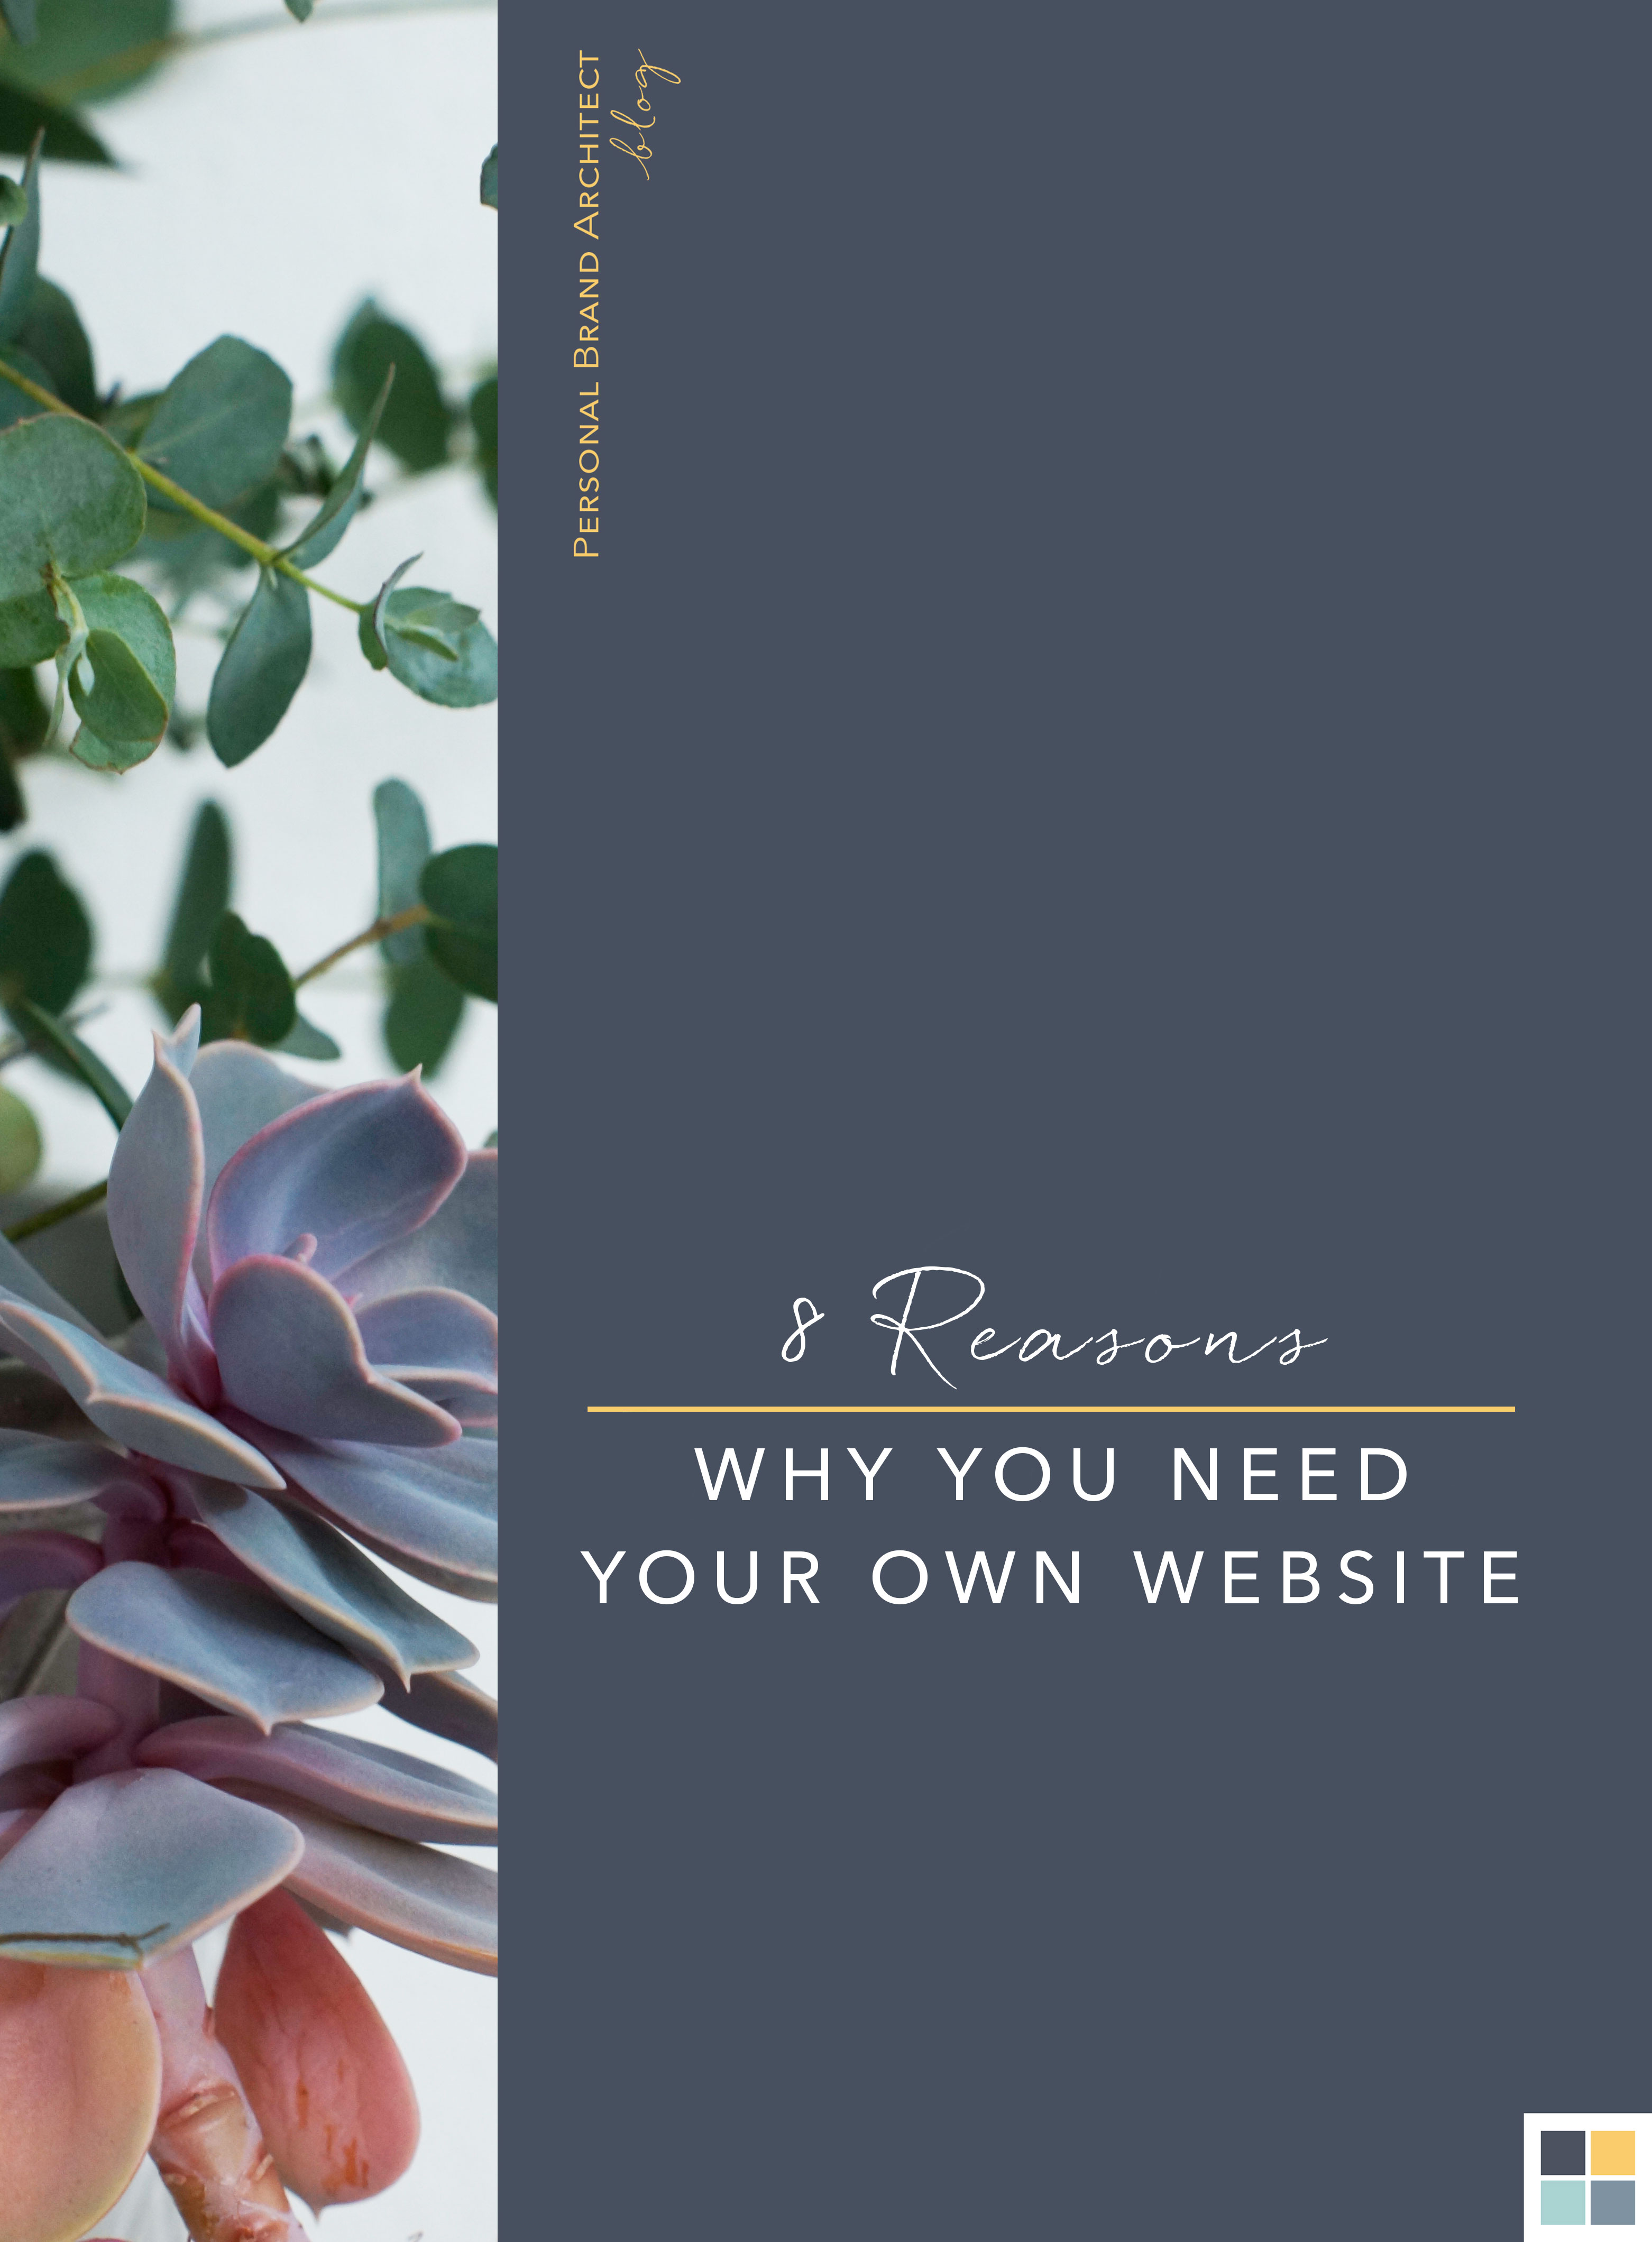 8 reasons why you need a personal website